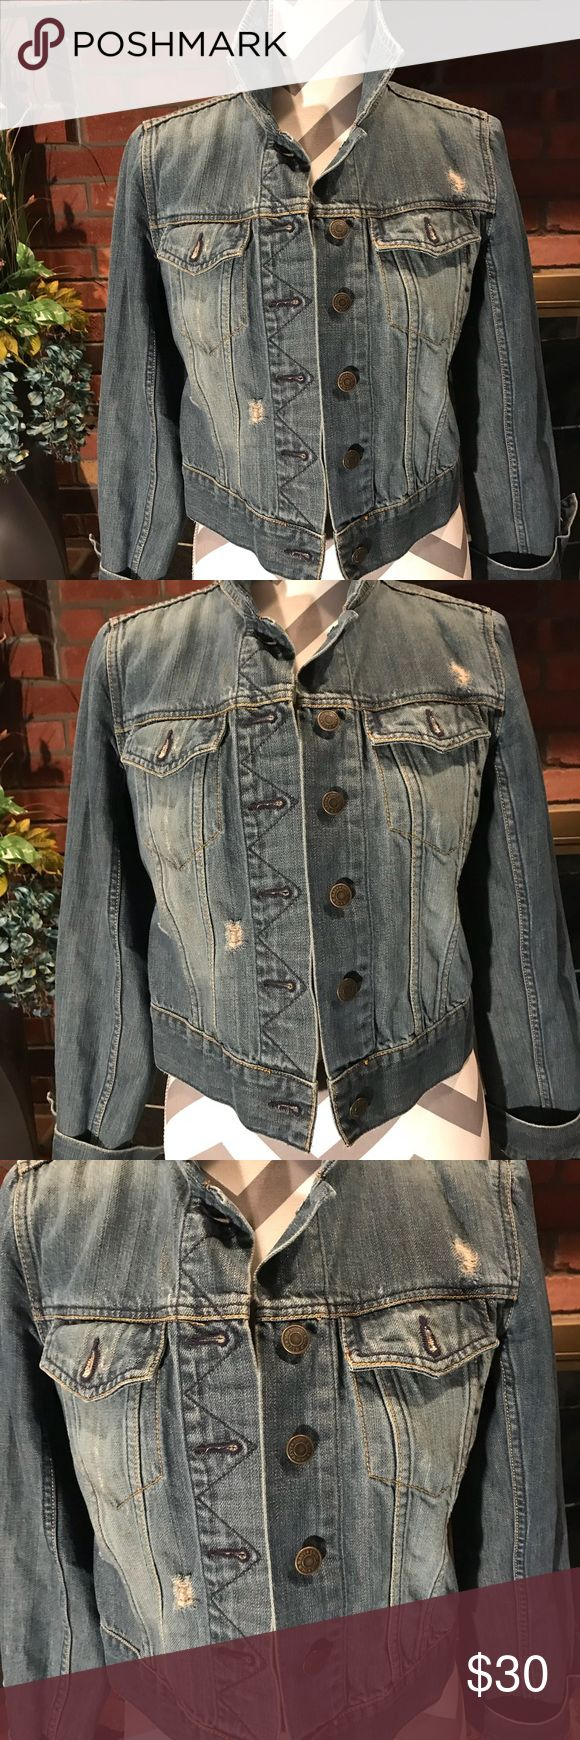 Woman's Old Navy jean jacket. Medium wash. Med. Old Navy jean jacket. Medium wash. Size M. In great condition. No tears, rips or stains. Old Navy Jackets & Coats Jean Jackets